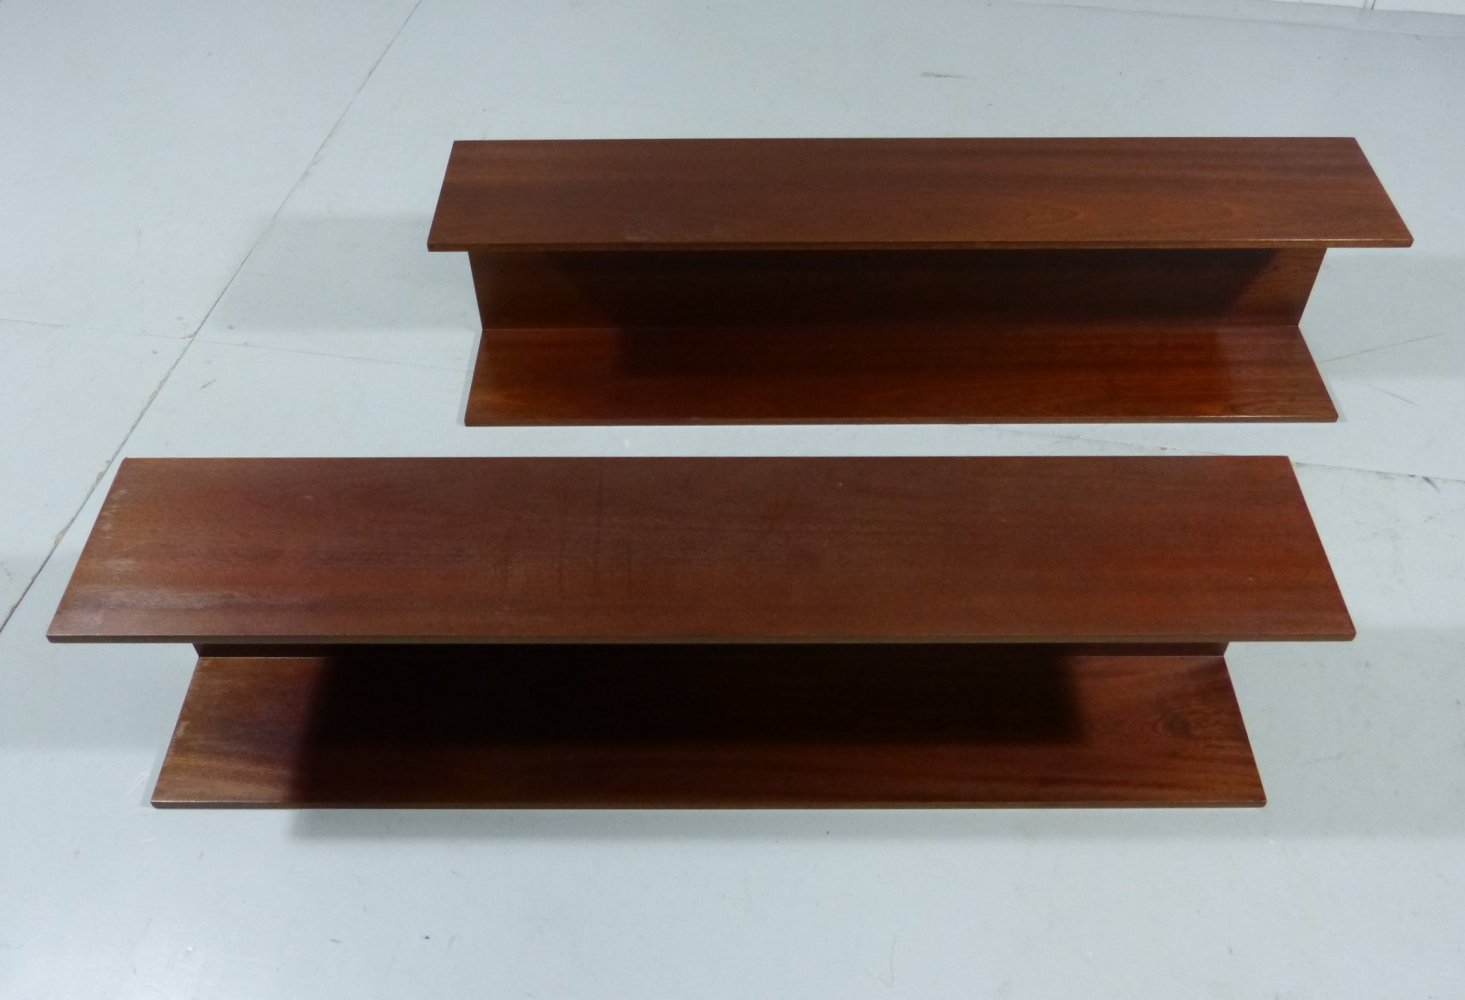 Set of 2 Wall Shelves by Walter Wirz for Wilhelm Renz, 1960